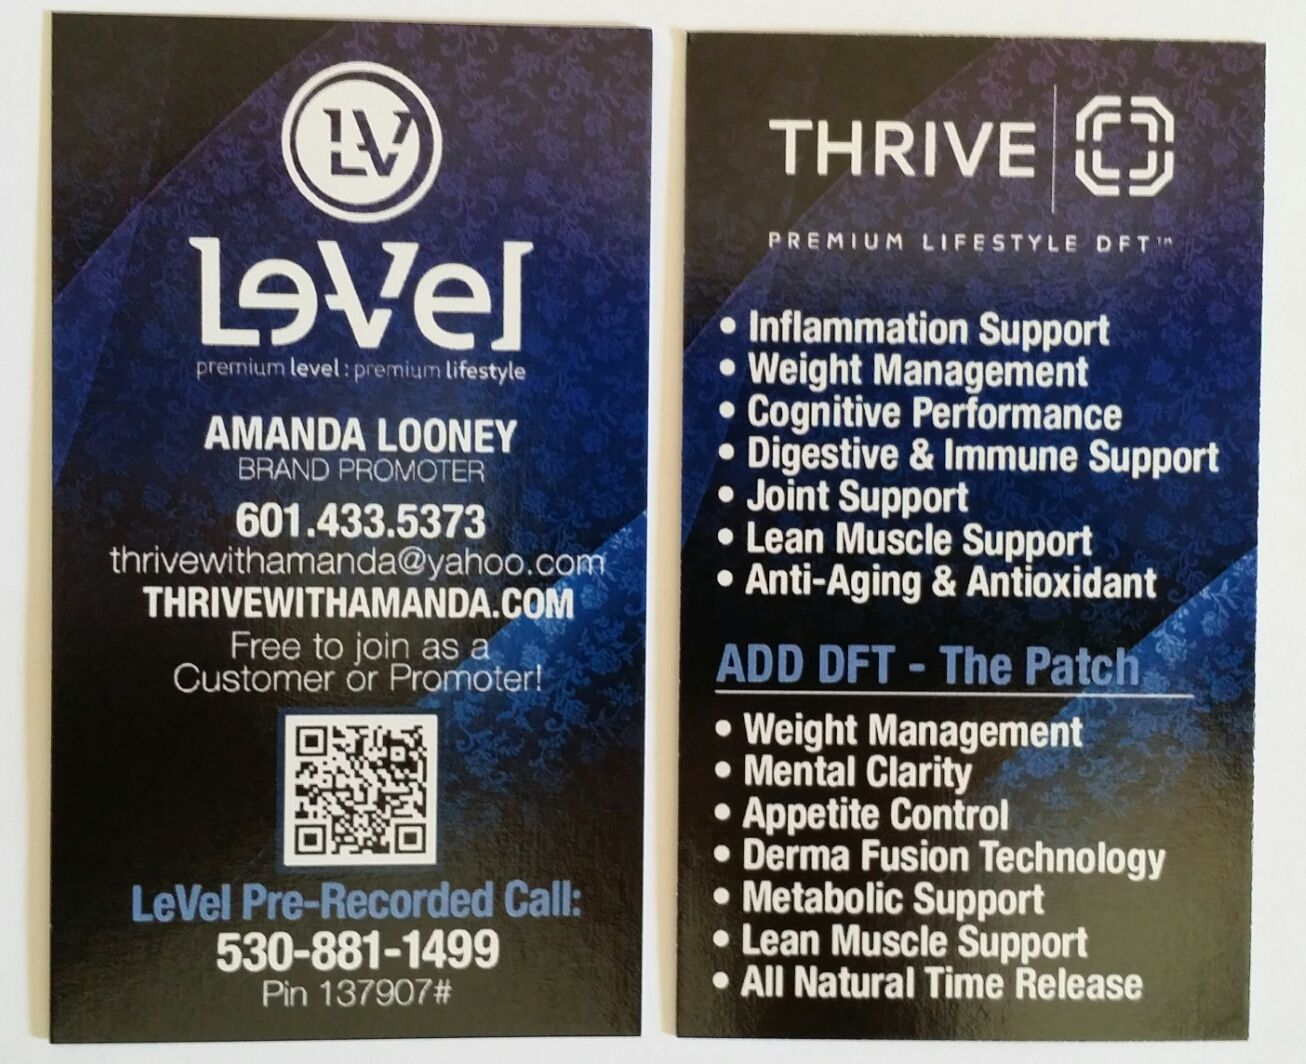 My New Le Vel Business Cards Have You Joined The Thrive